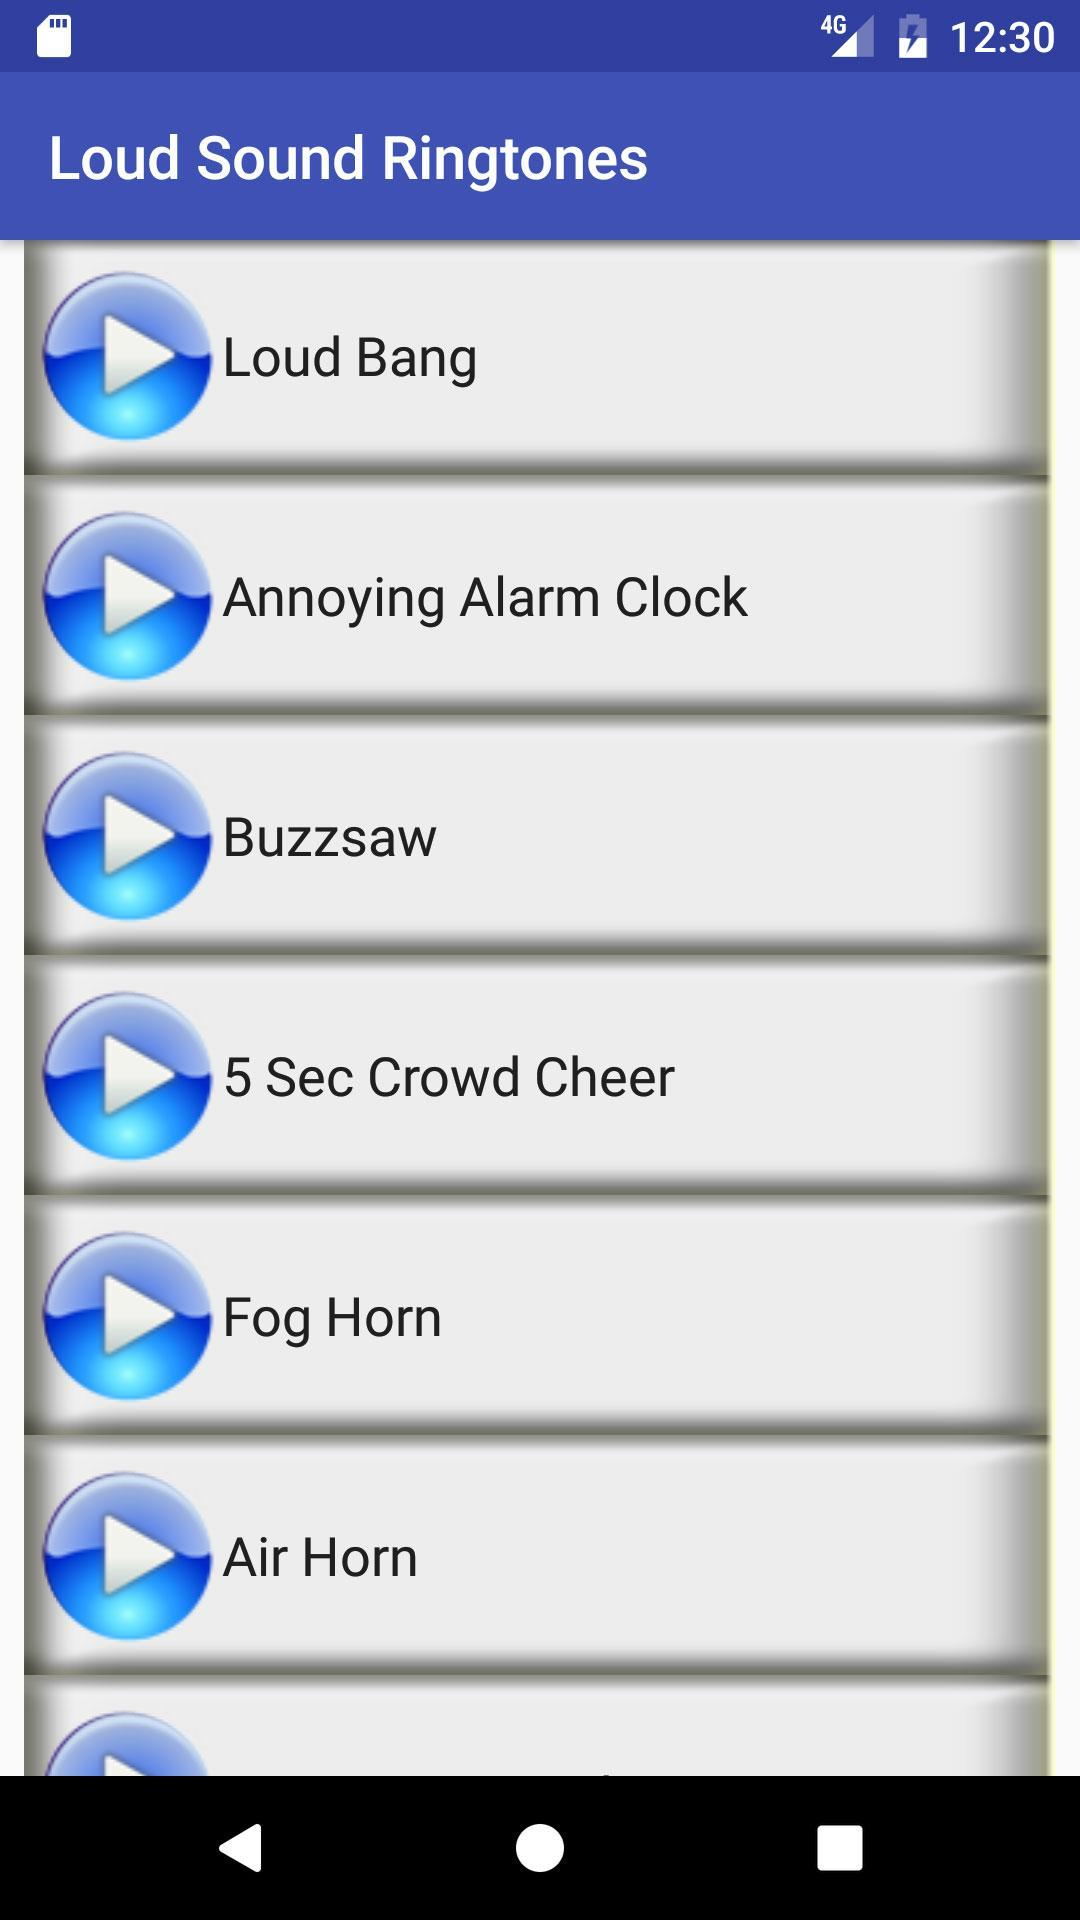 Loud Sound Ringtones for Android - APK Download